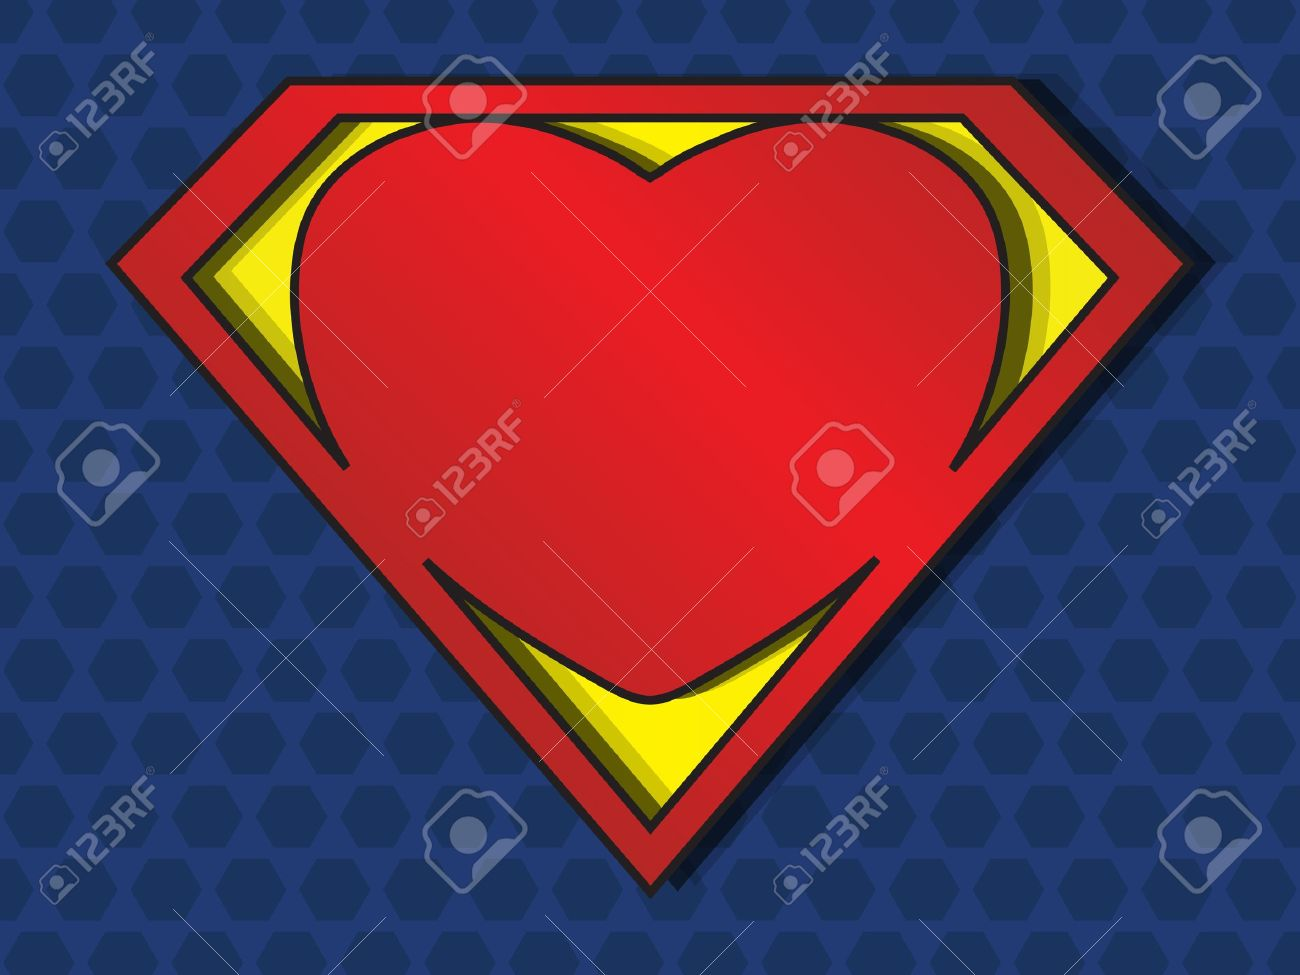 a big red heart shaped like a superhero shield, symbol for strong love - 12937397